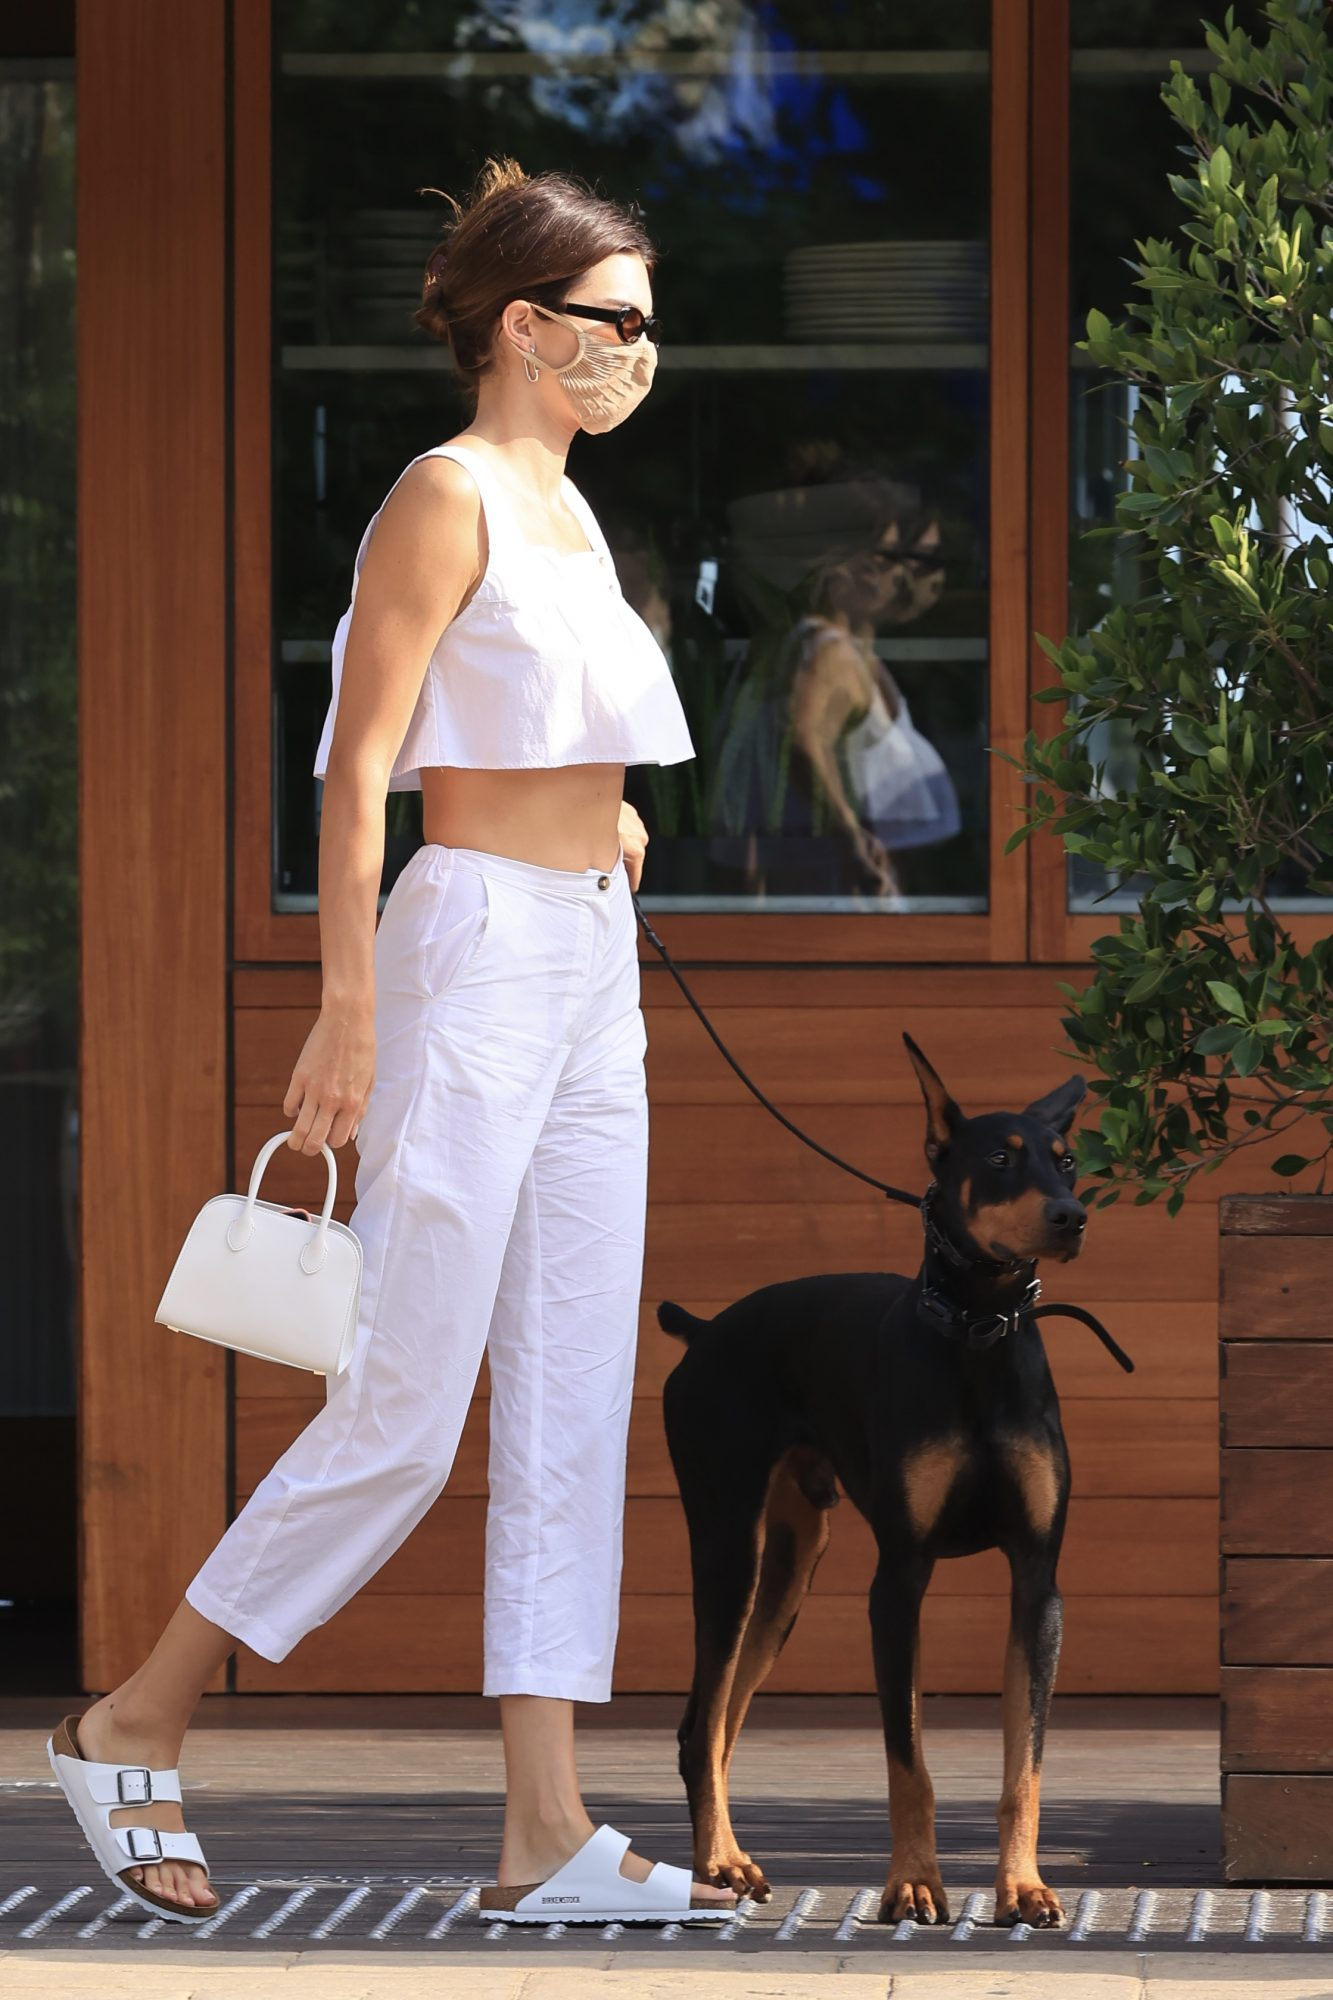 Kendall Jenner brings her adorable dog along as she enjoys her Sunday afternoon with friends at Soho house in Malibu.